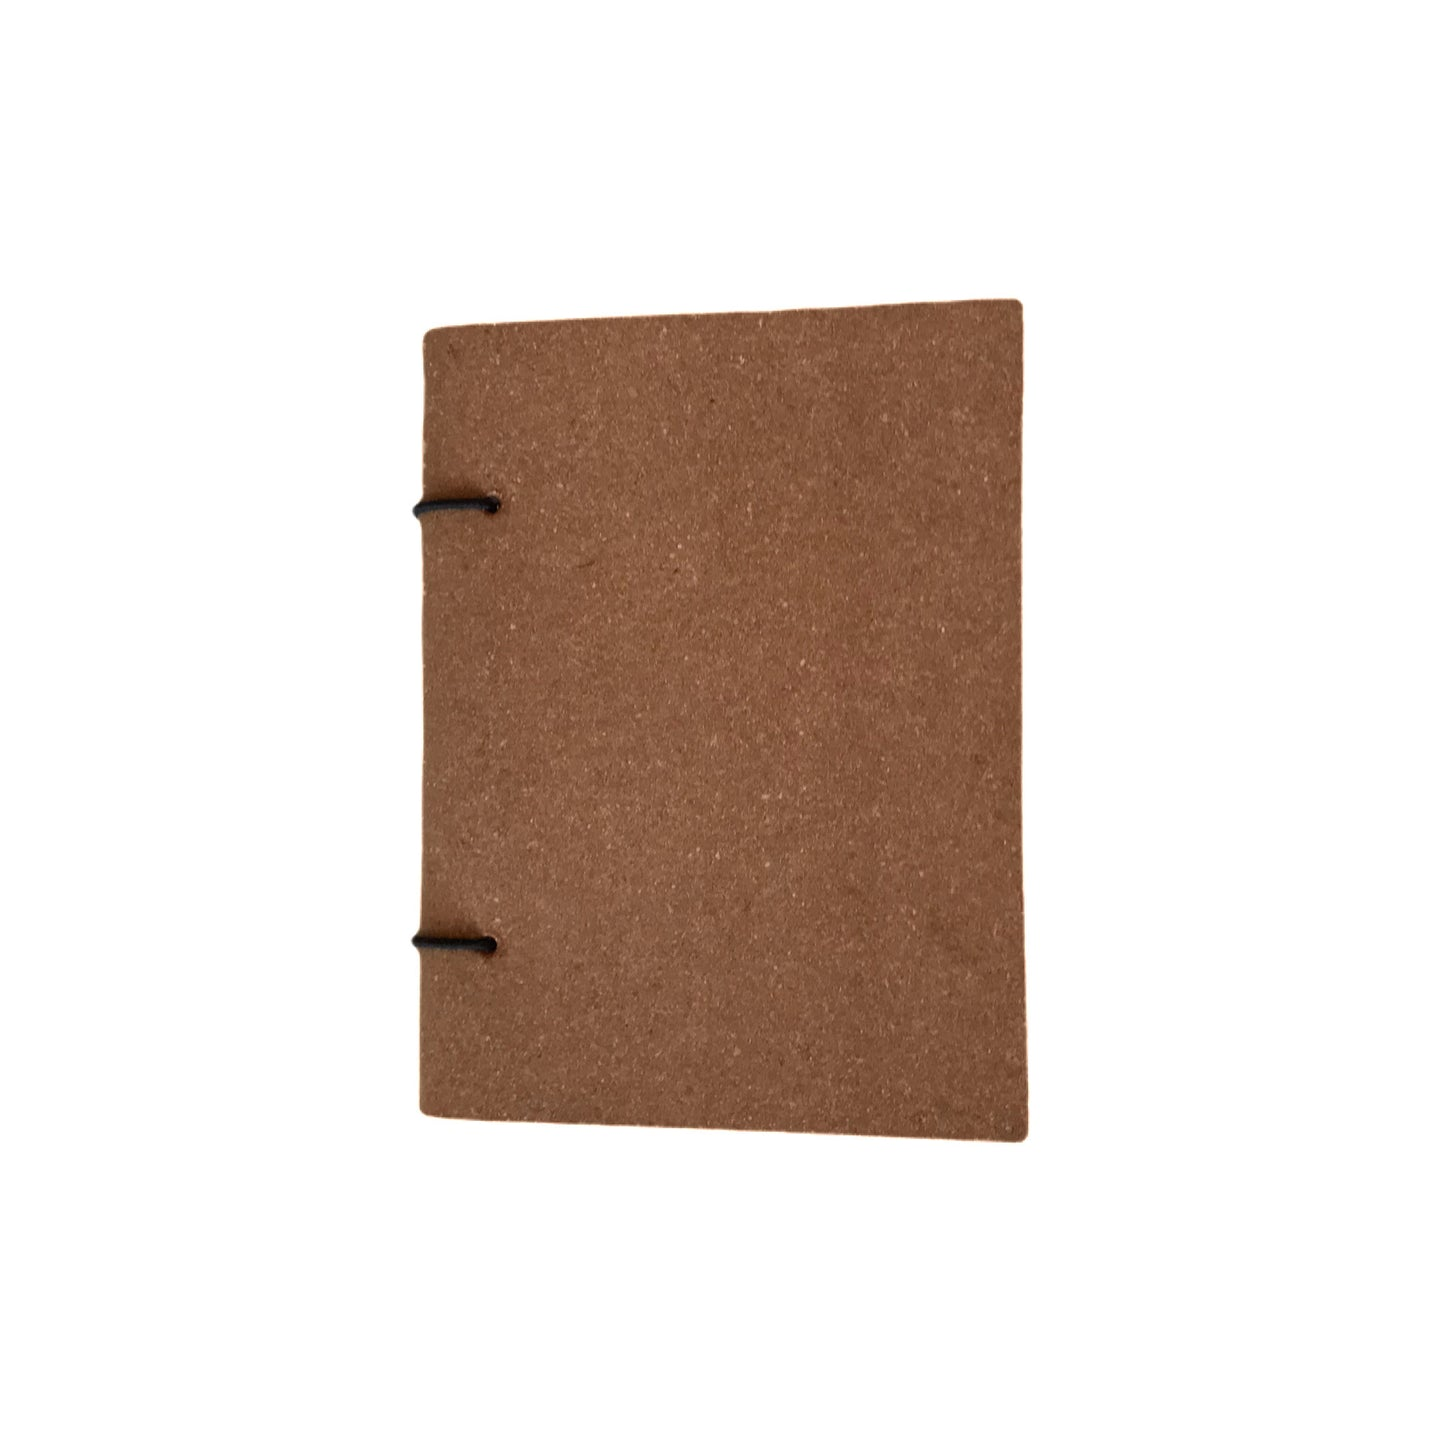 A6 Recycled Leather Bound Paper Notebook